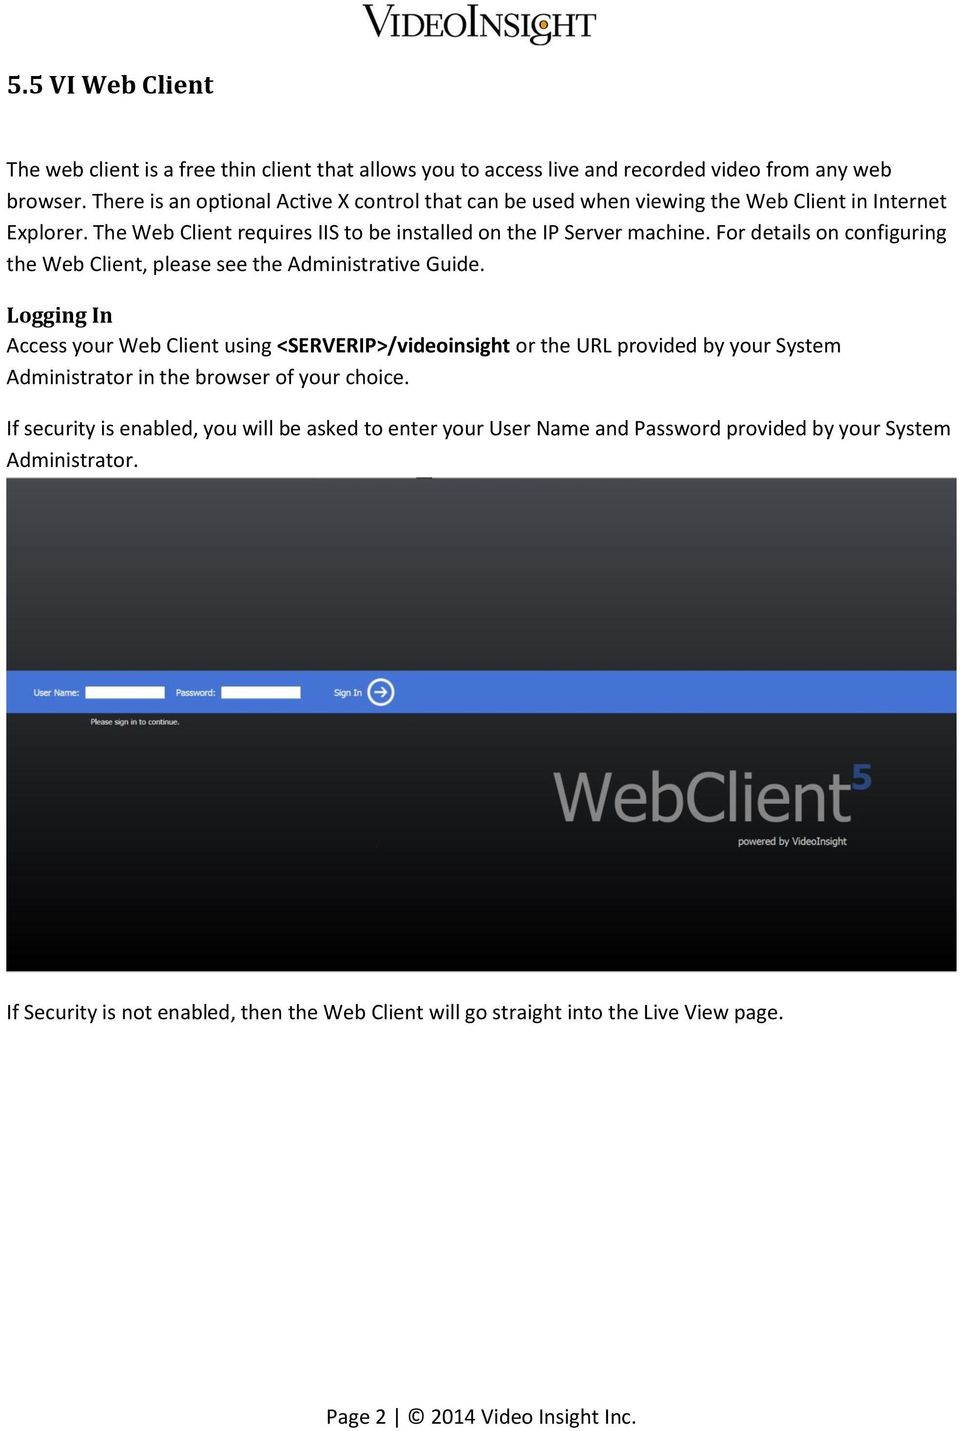 For details on configuring the Web Client, please see the Administrative Guide.